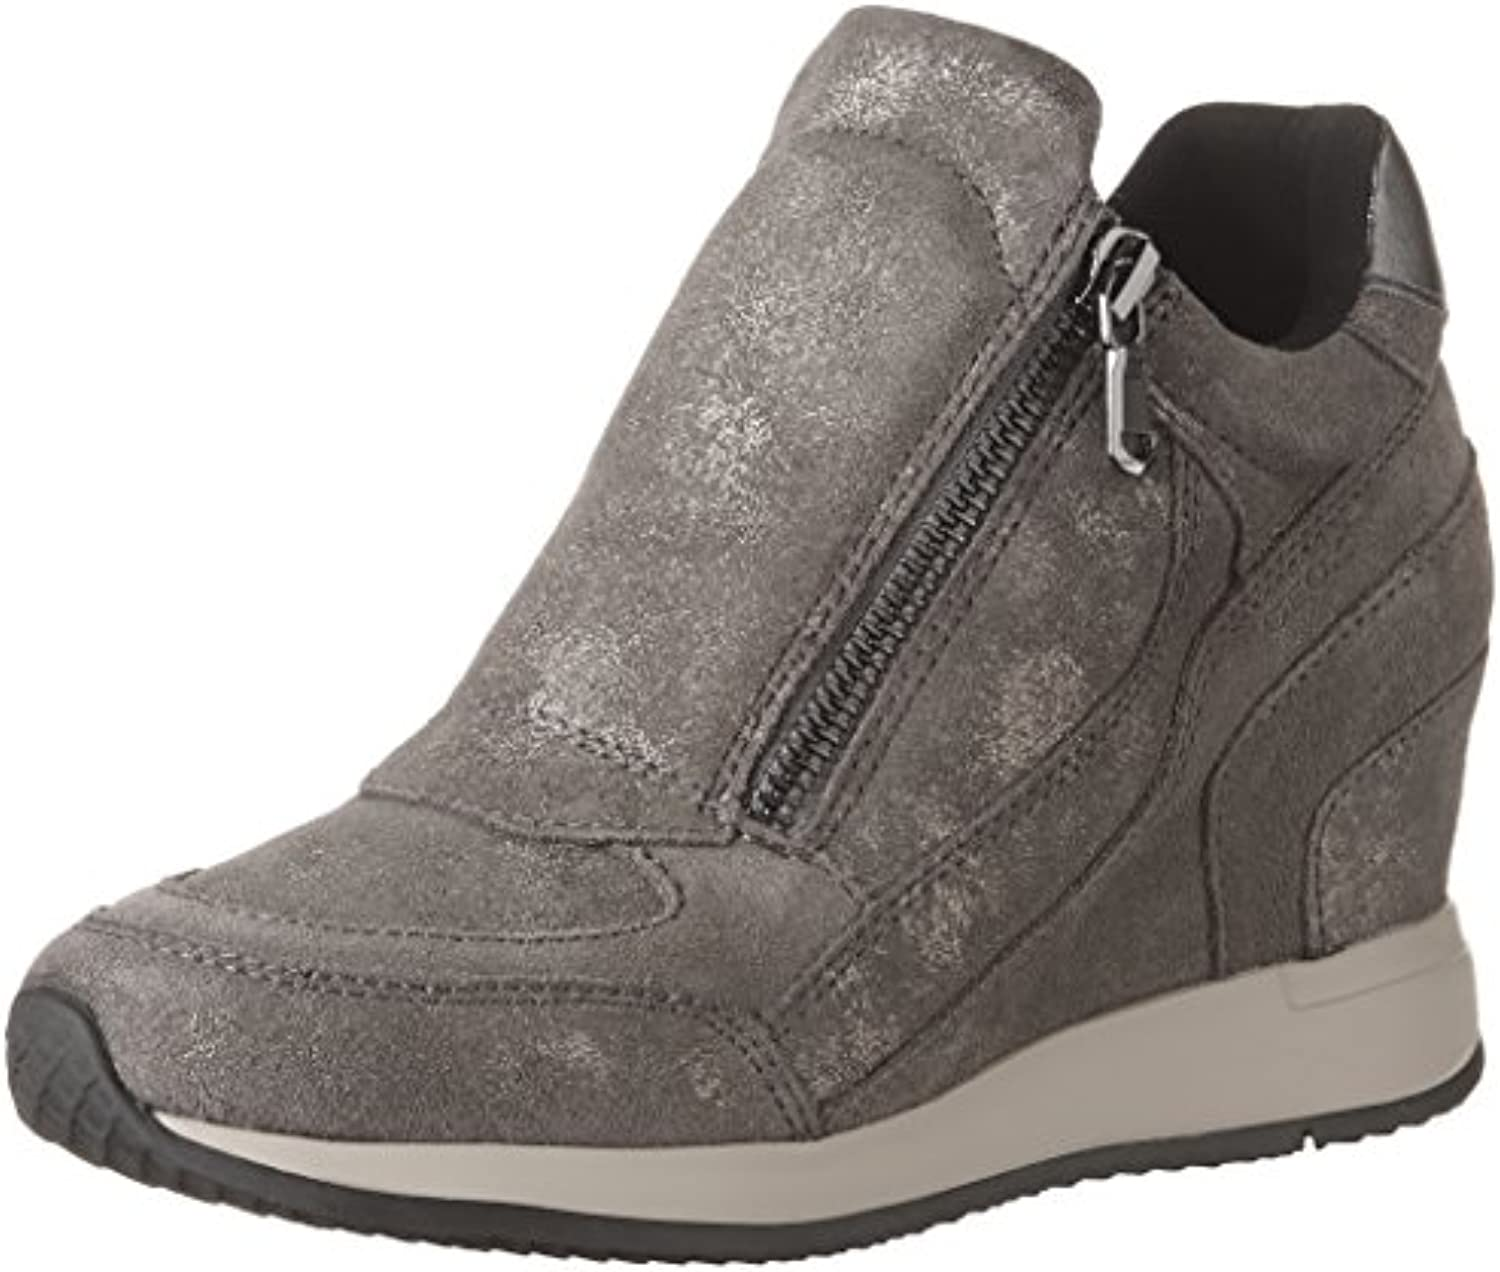 Geox D Nydame A-Shiny Sue+Suede D620QA 07722 C9002